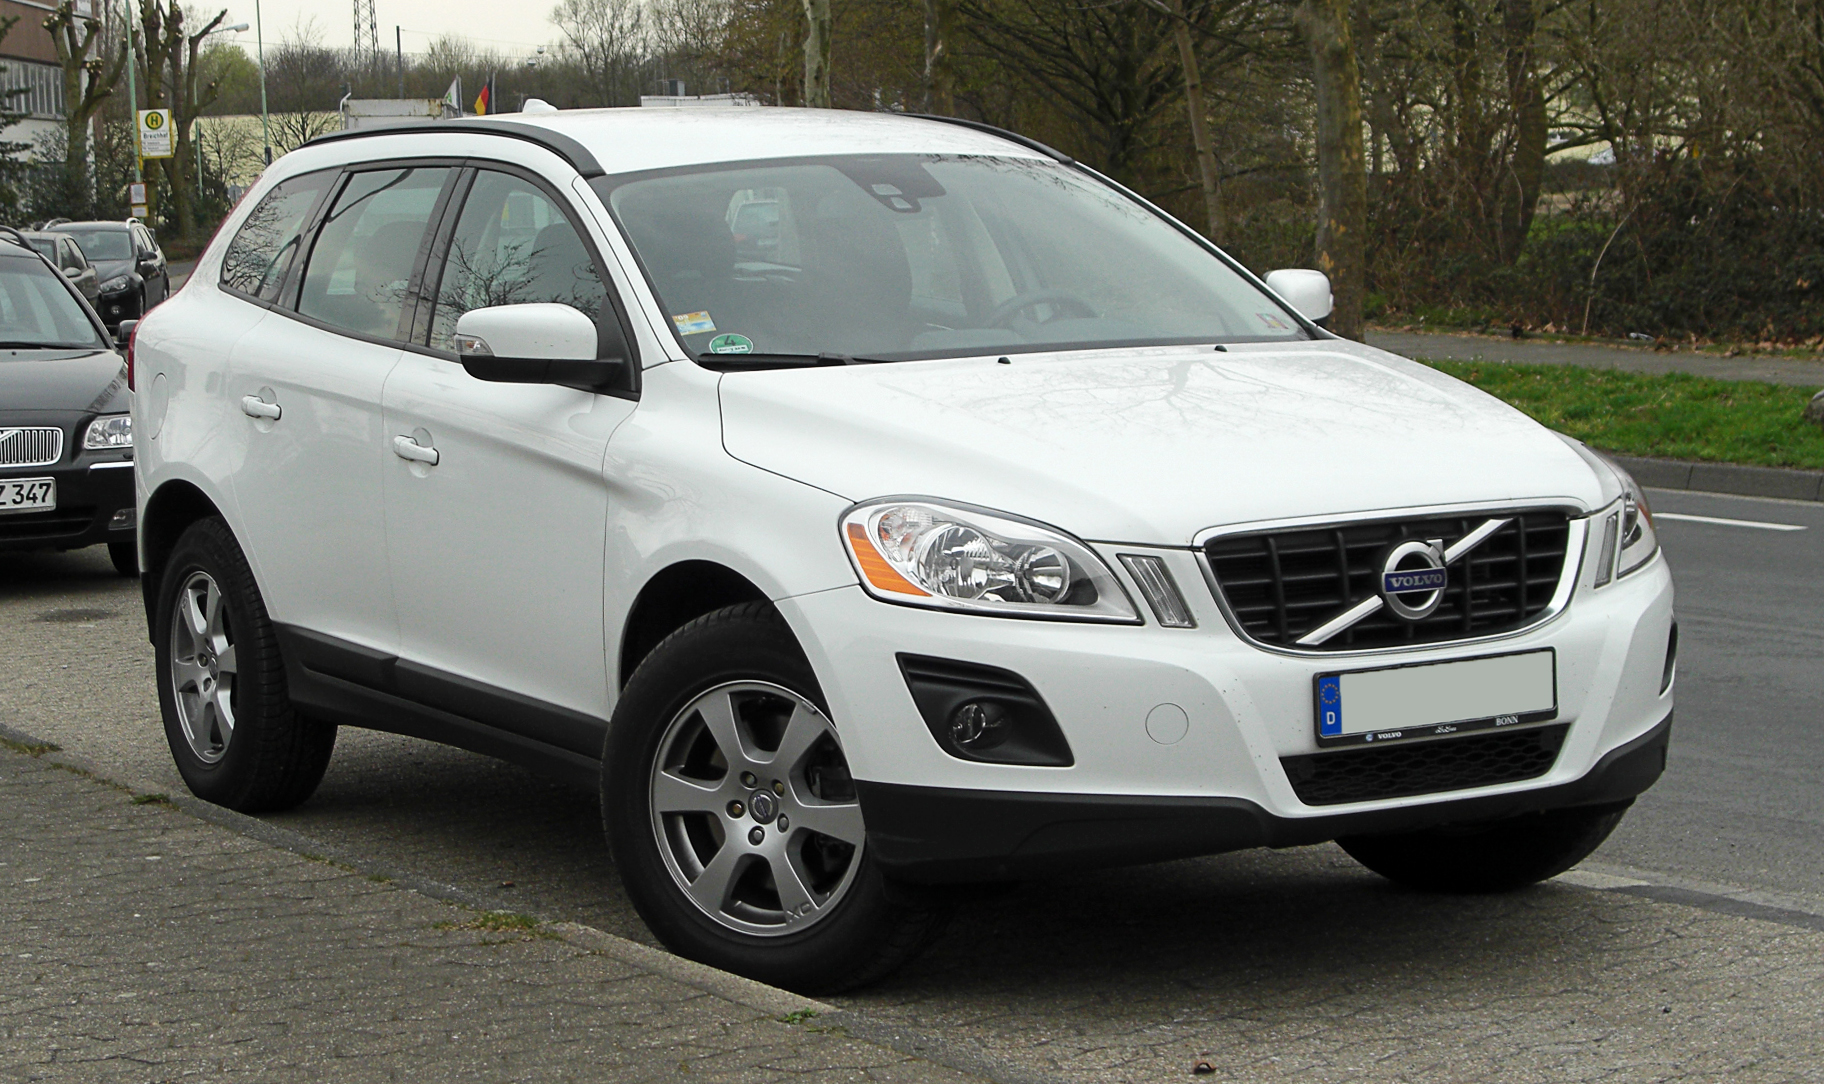 volvo xc60 d5 awd reviews volvo xc60 d5 awd car reviews. Black Bedroom Furniture Sets. Home Design Ideas